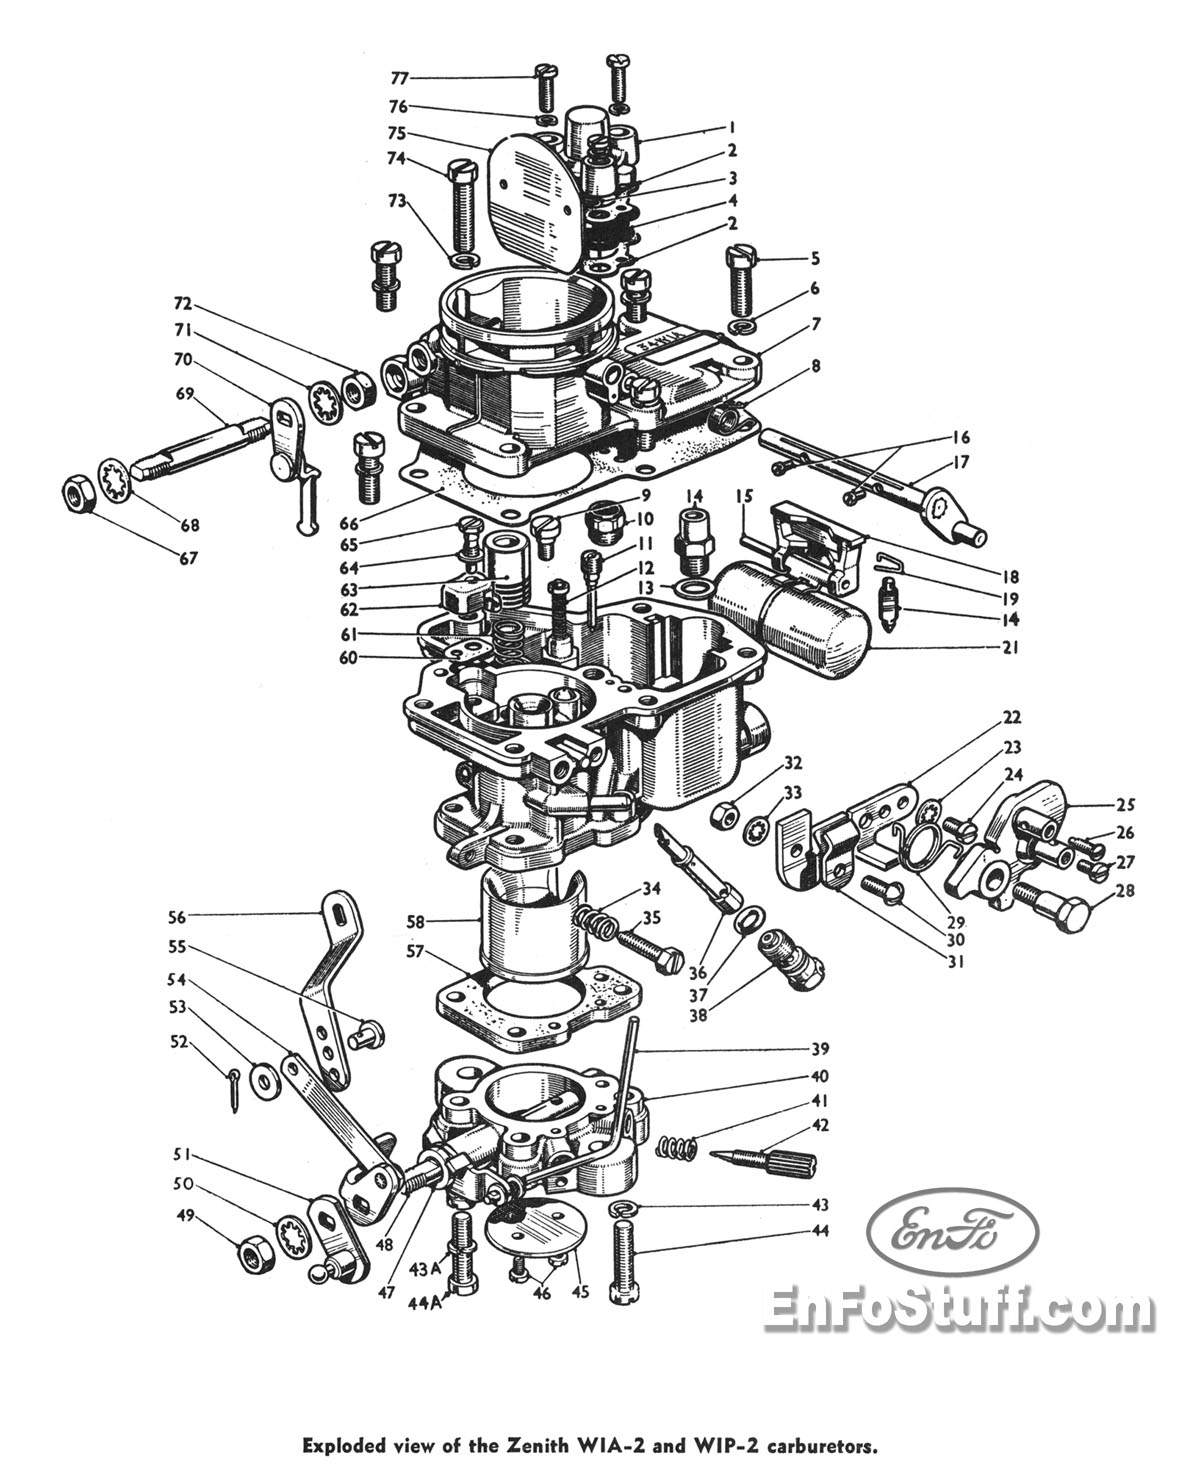 Carburetor Diagram Zenith Wia 2 And Wip 2